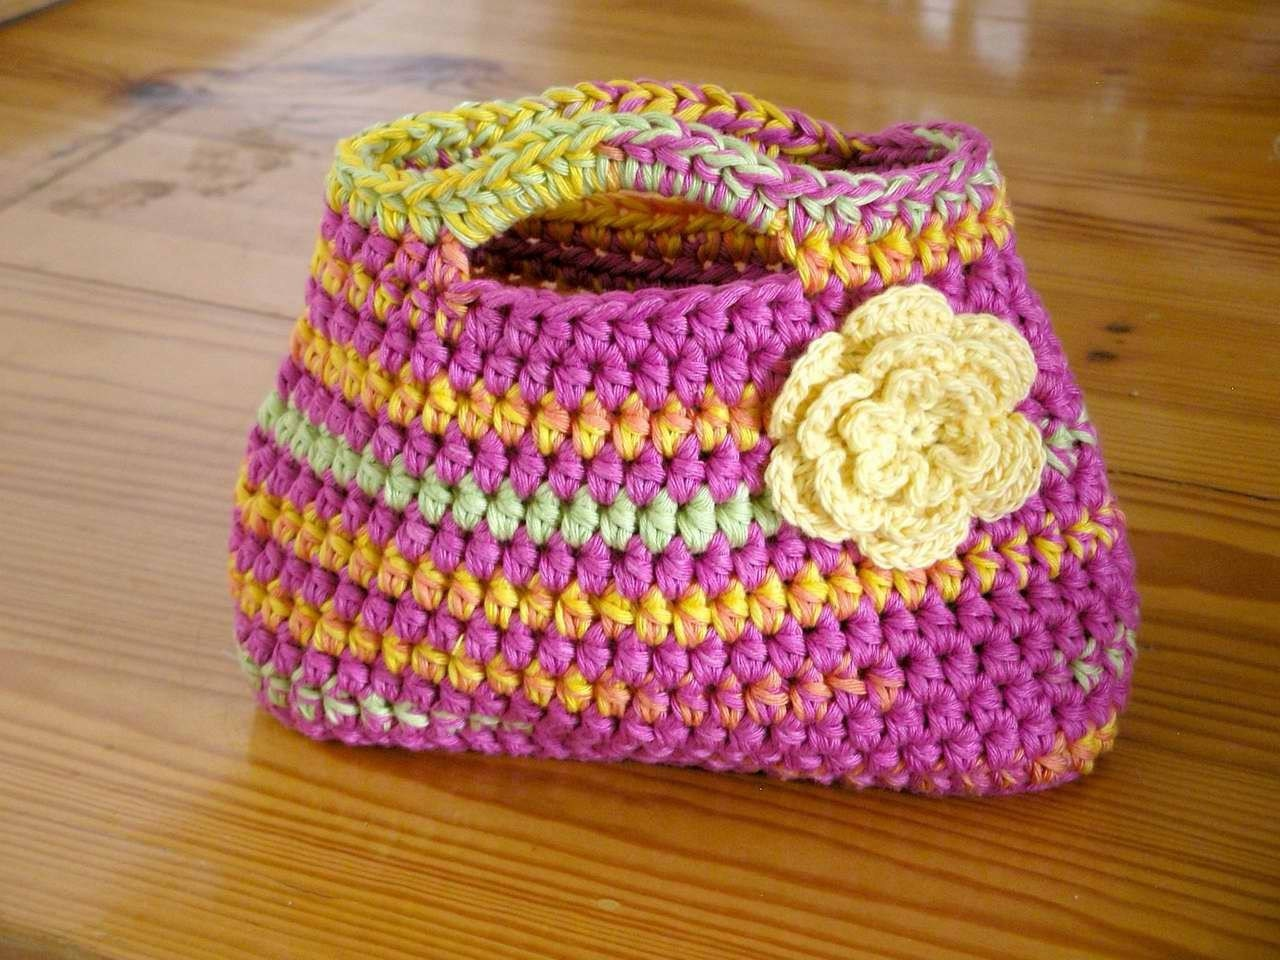 Crochet Patterns For Purses And Bags : Handbag Crochet Pattern Easy Peasy Little Kids by bubnutPatterns